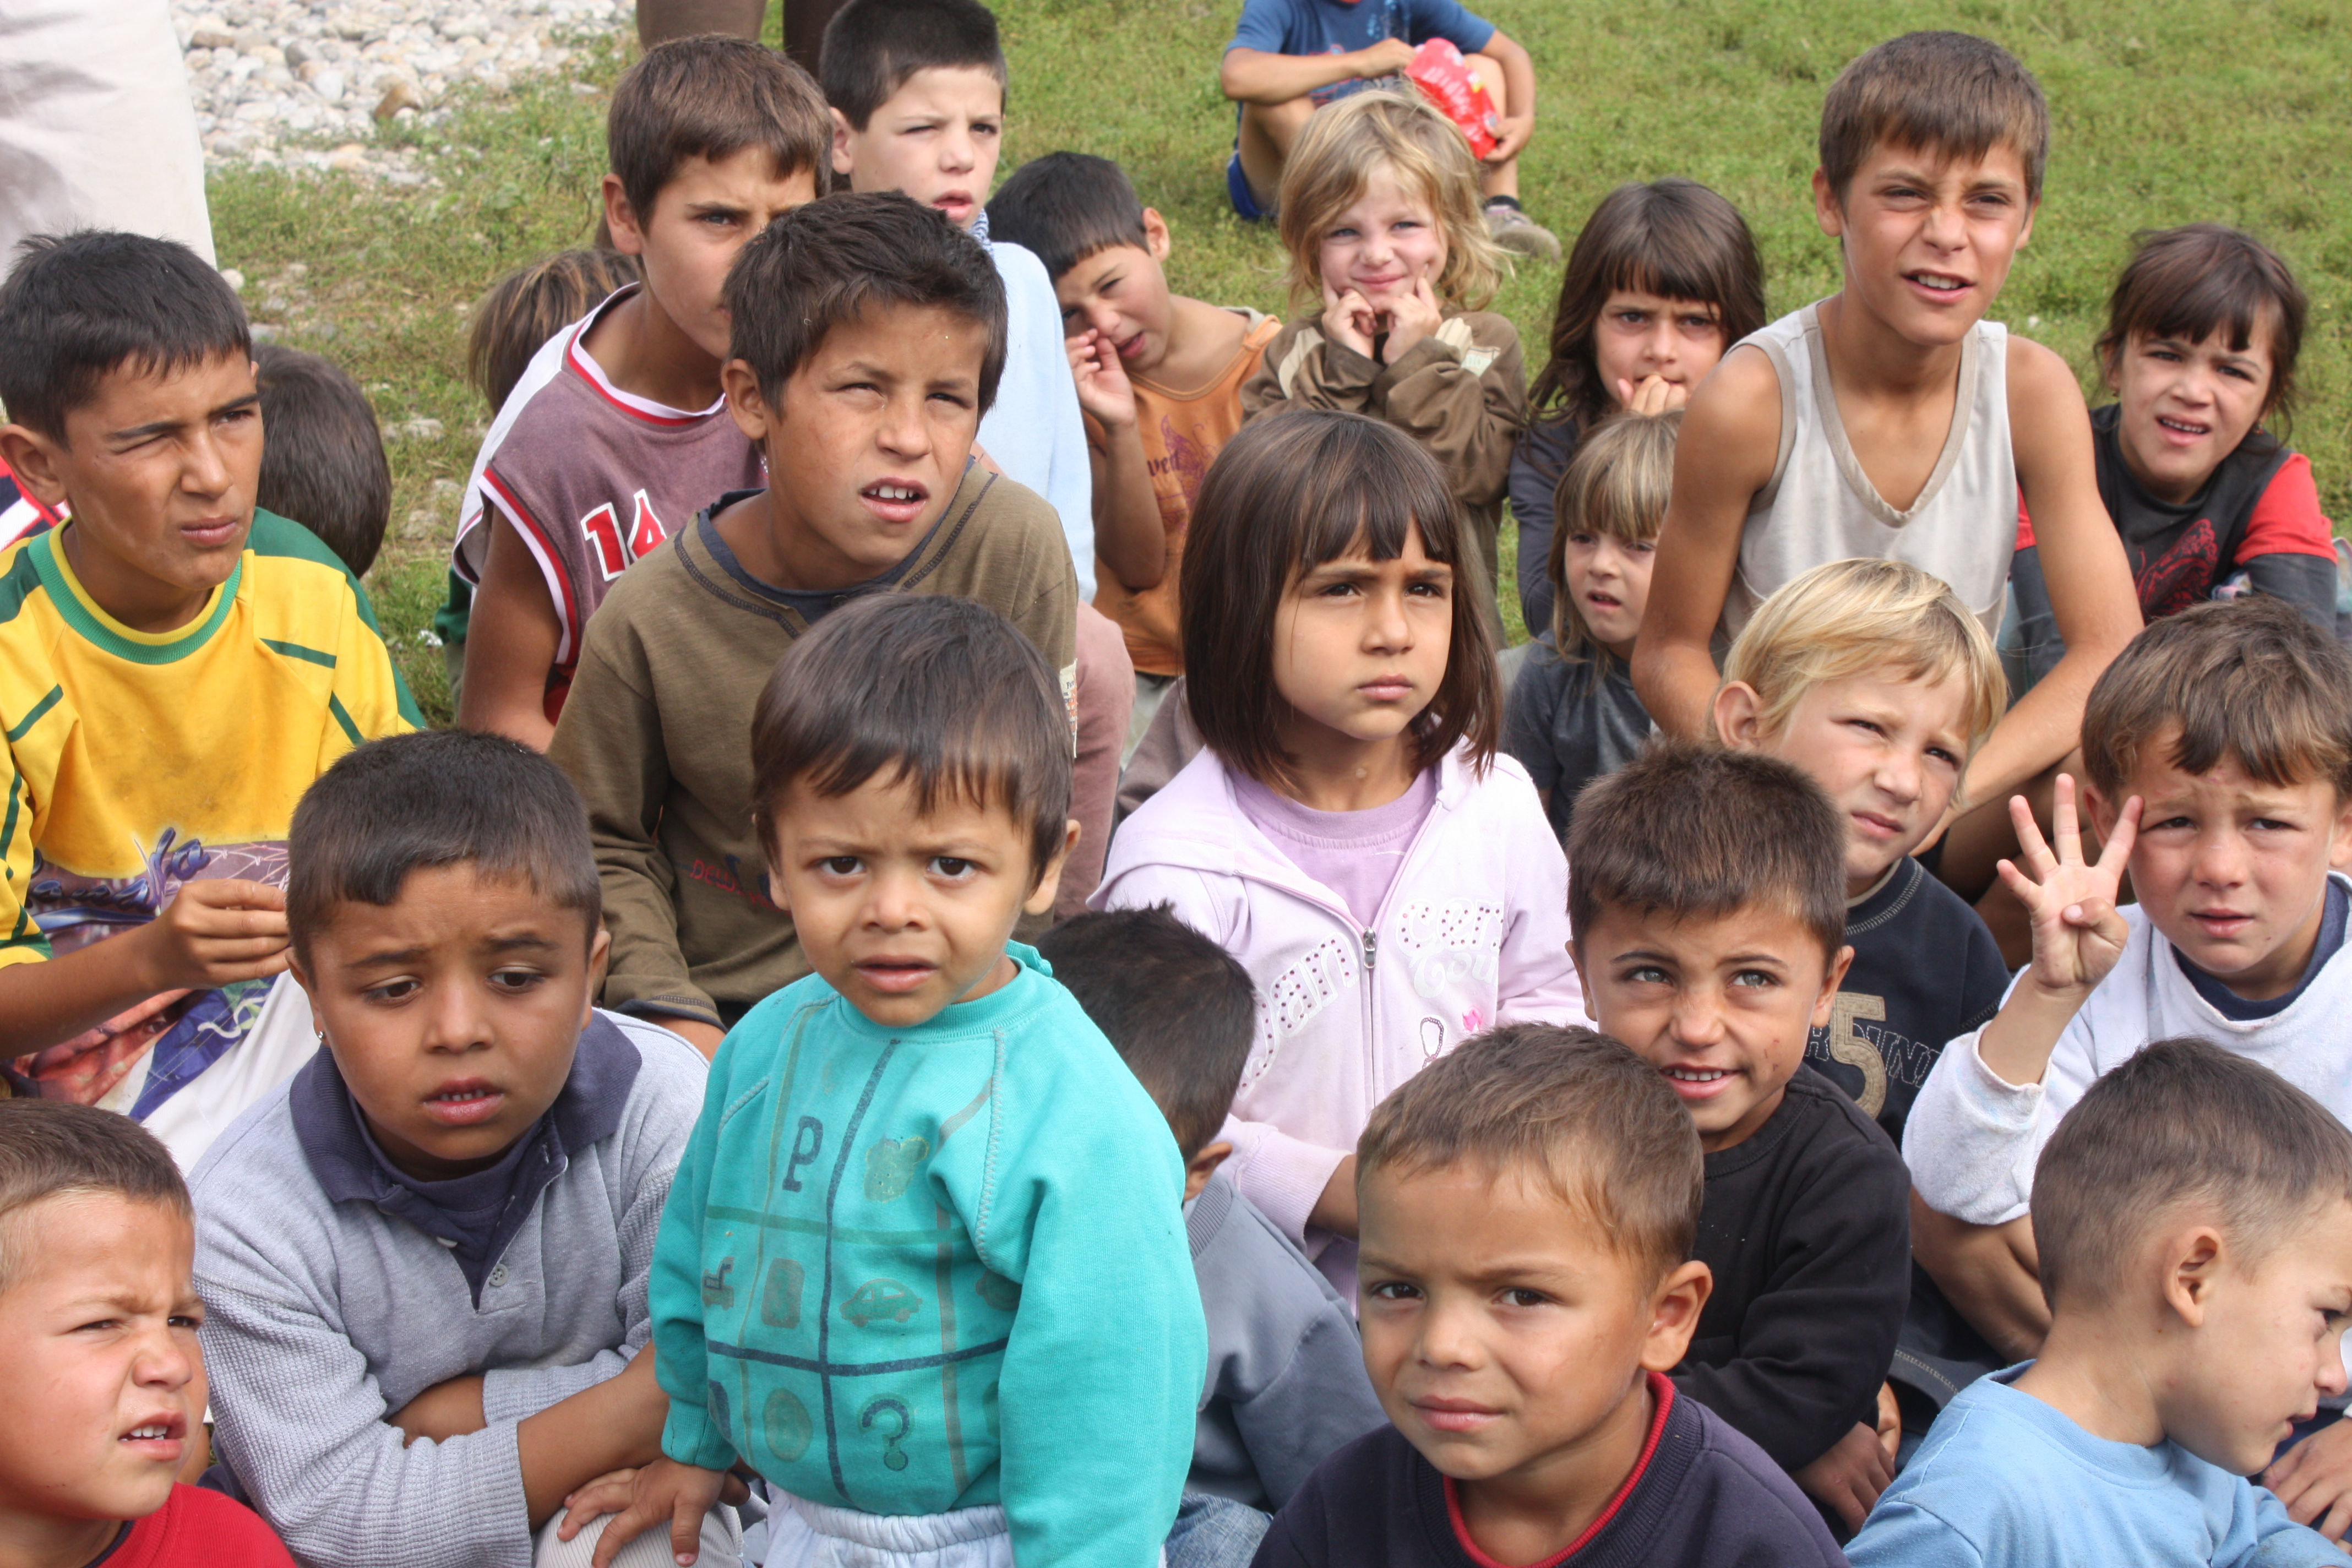 children sad united states government kidnapping serbia roma place childrens gypsy fun